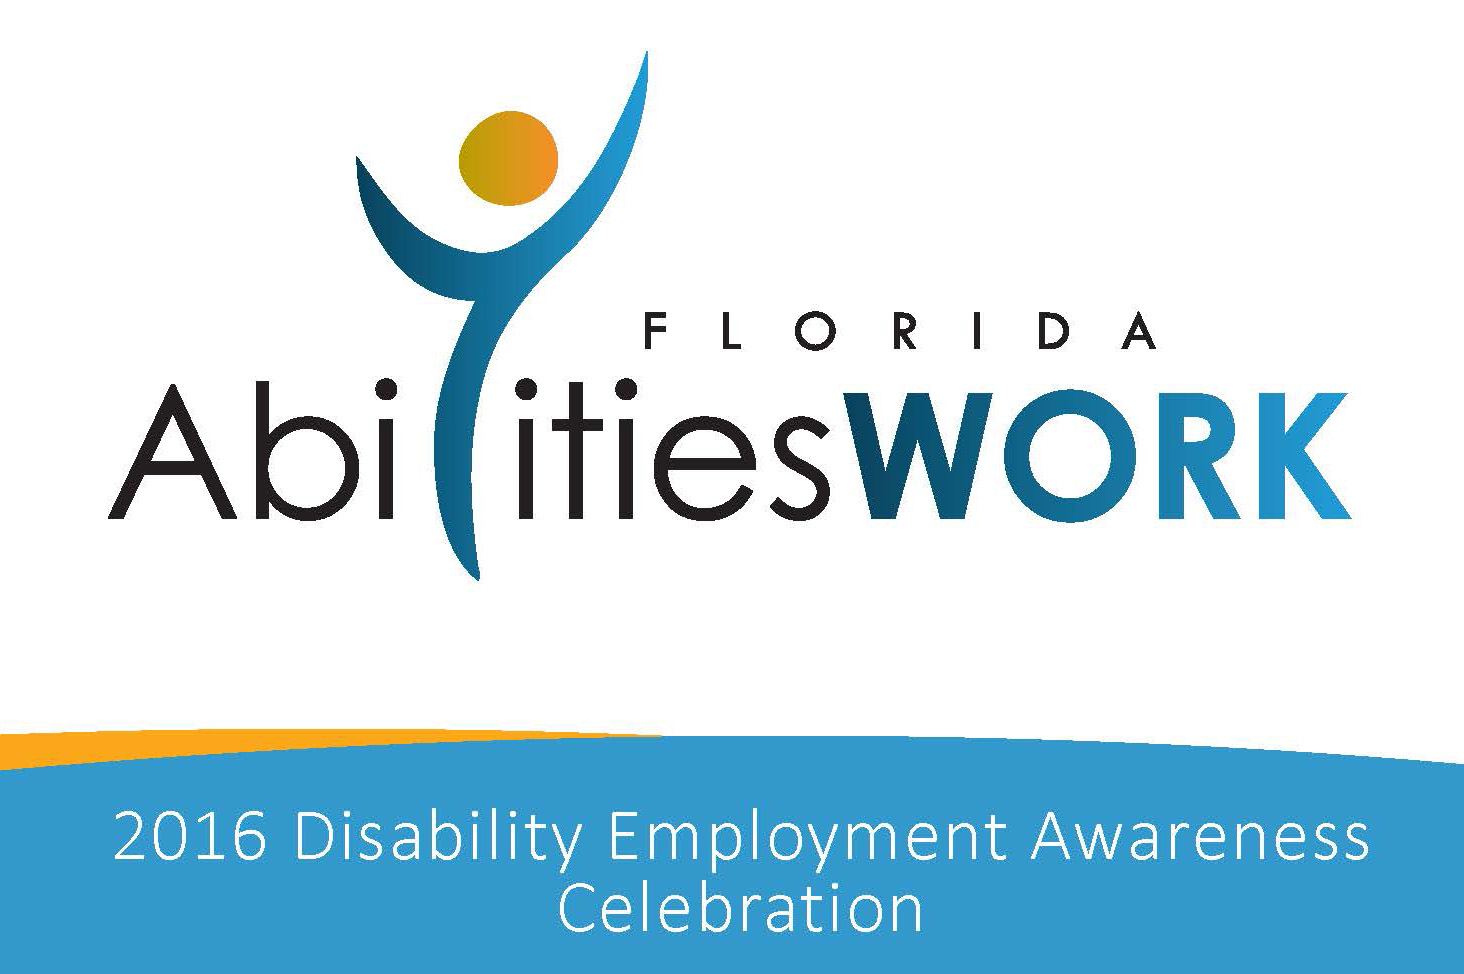 Disability Employment Awareness Celebration